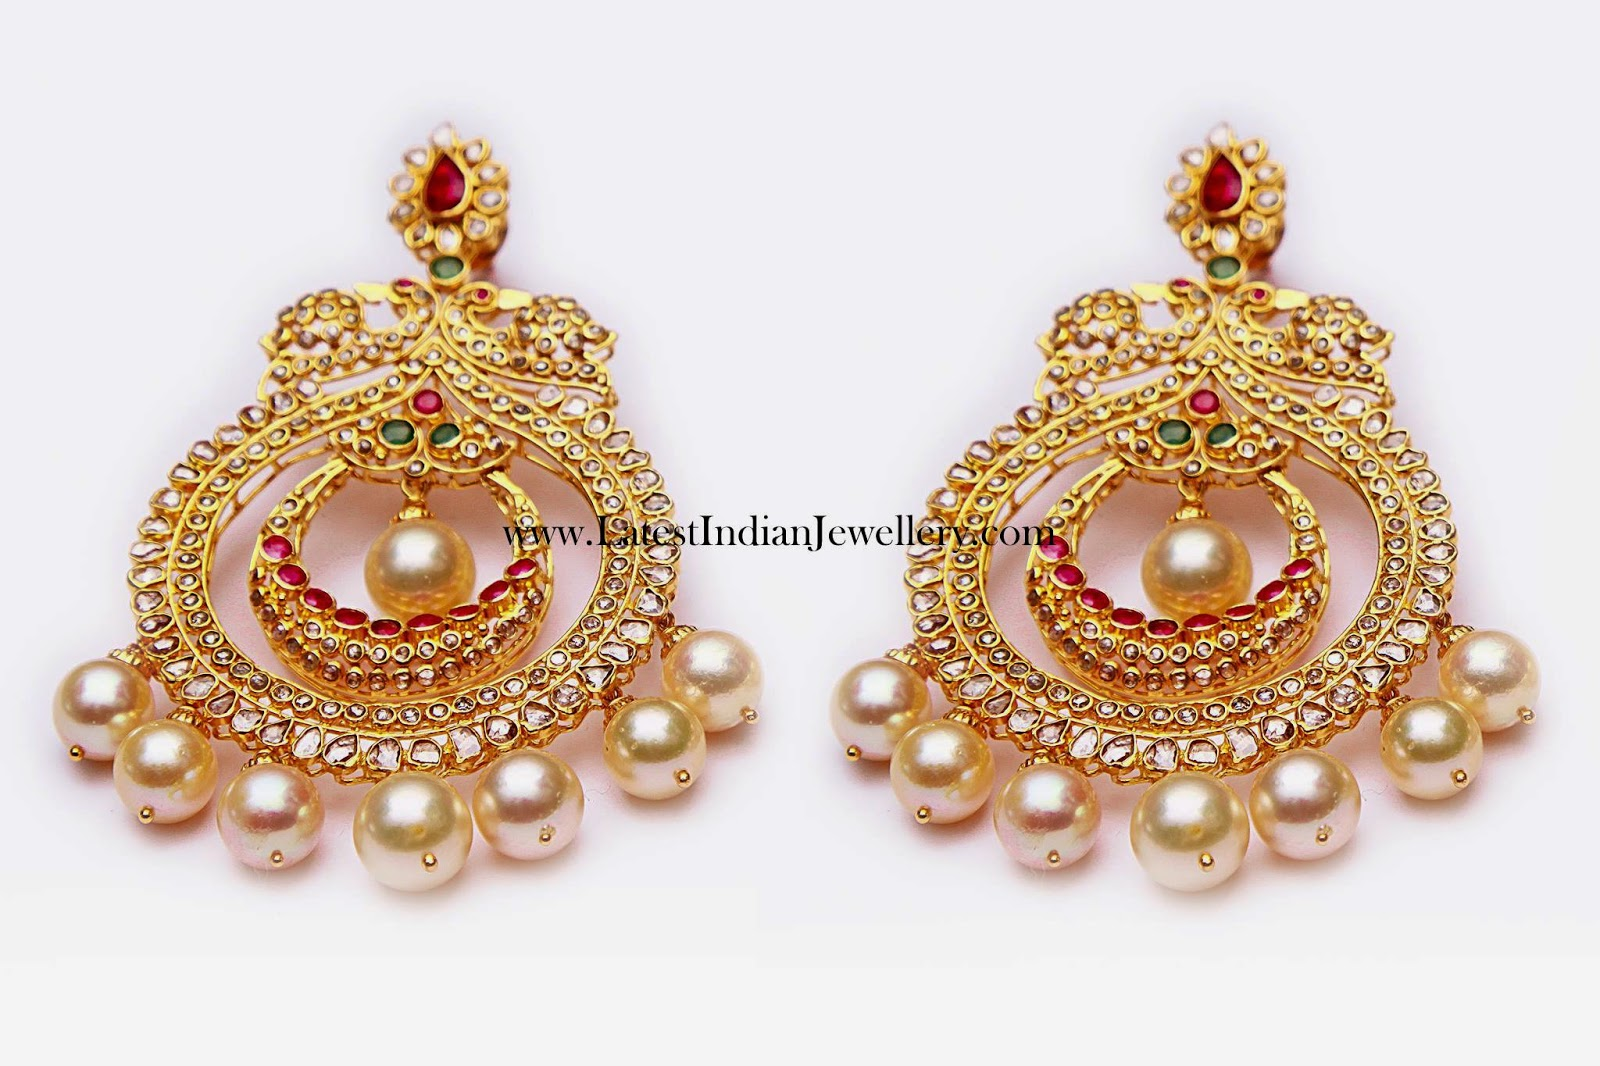 Big Gold Chand Bali S Pictures to Pin on Pinterest - ThePinsta